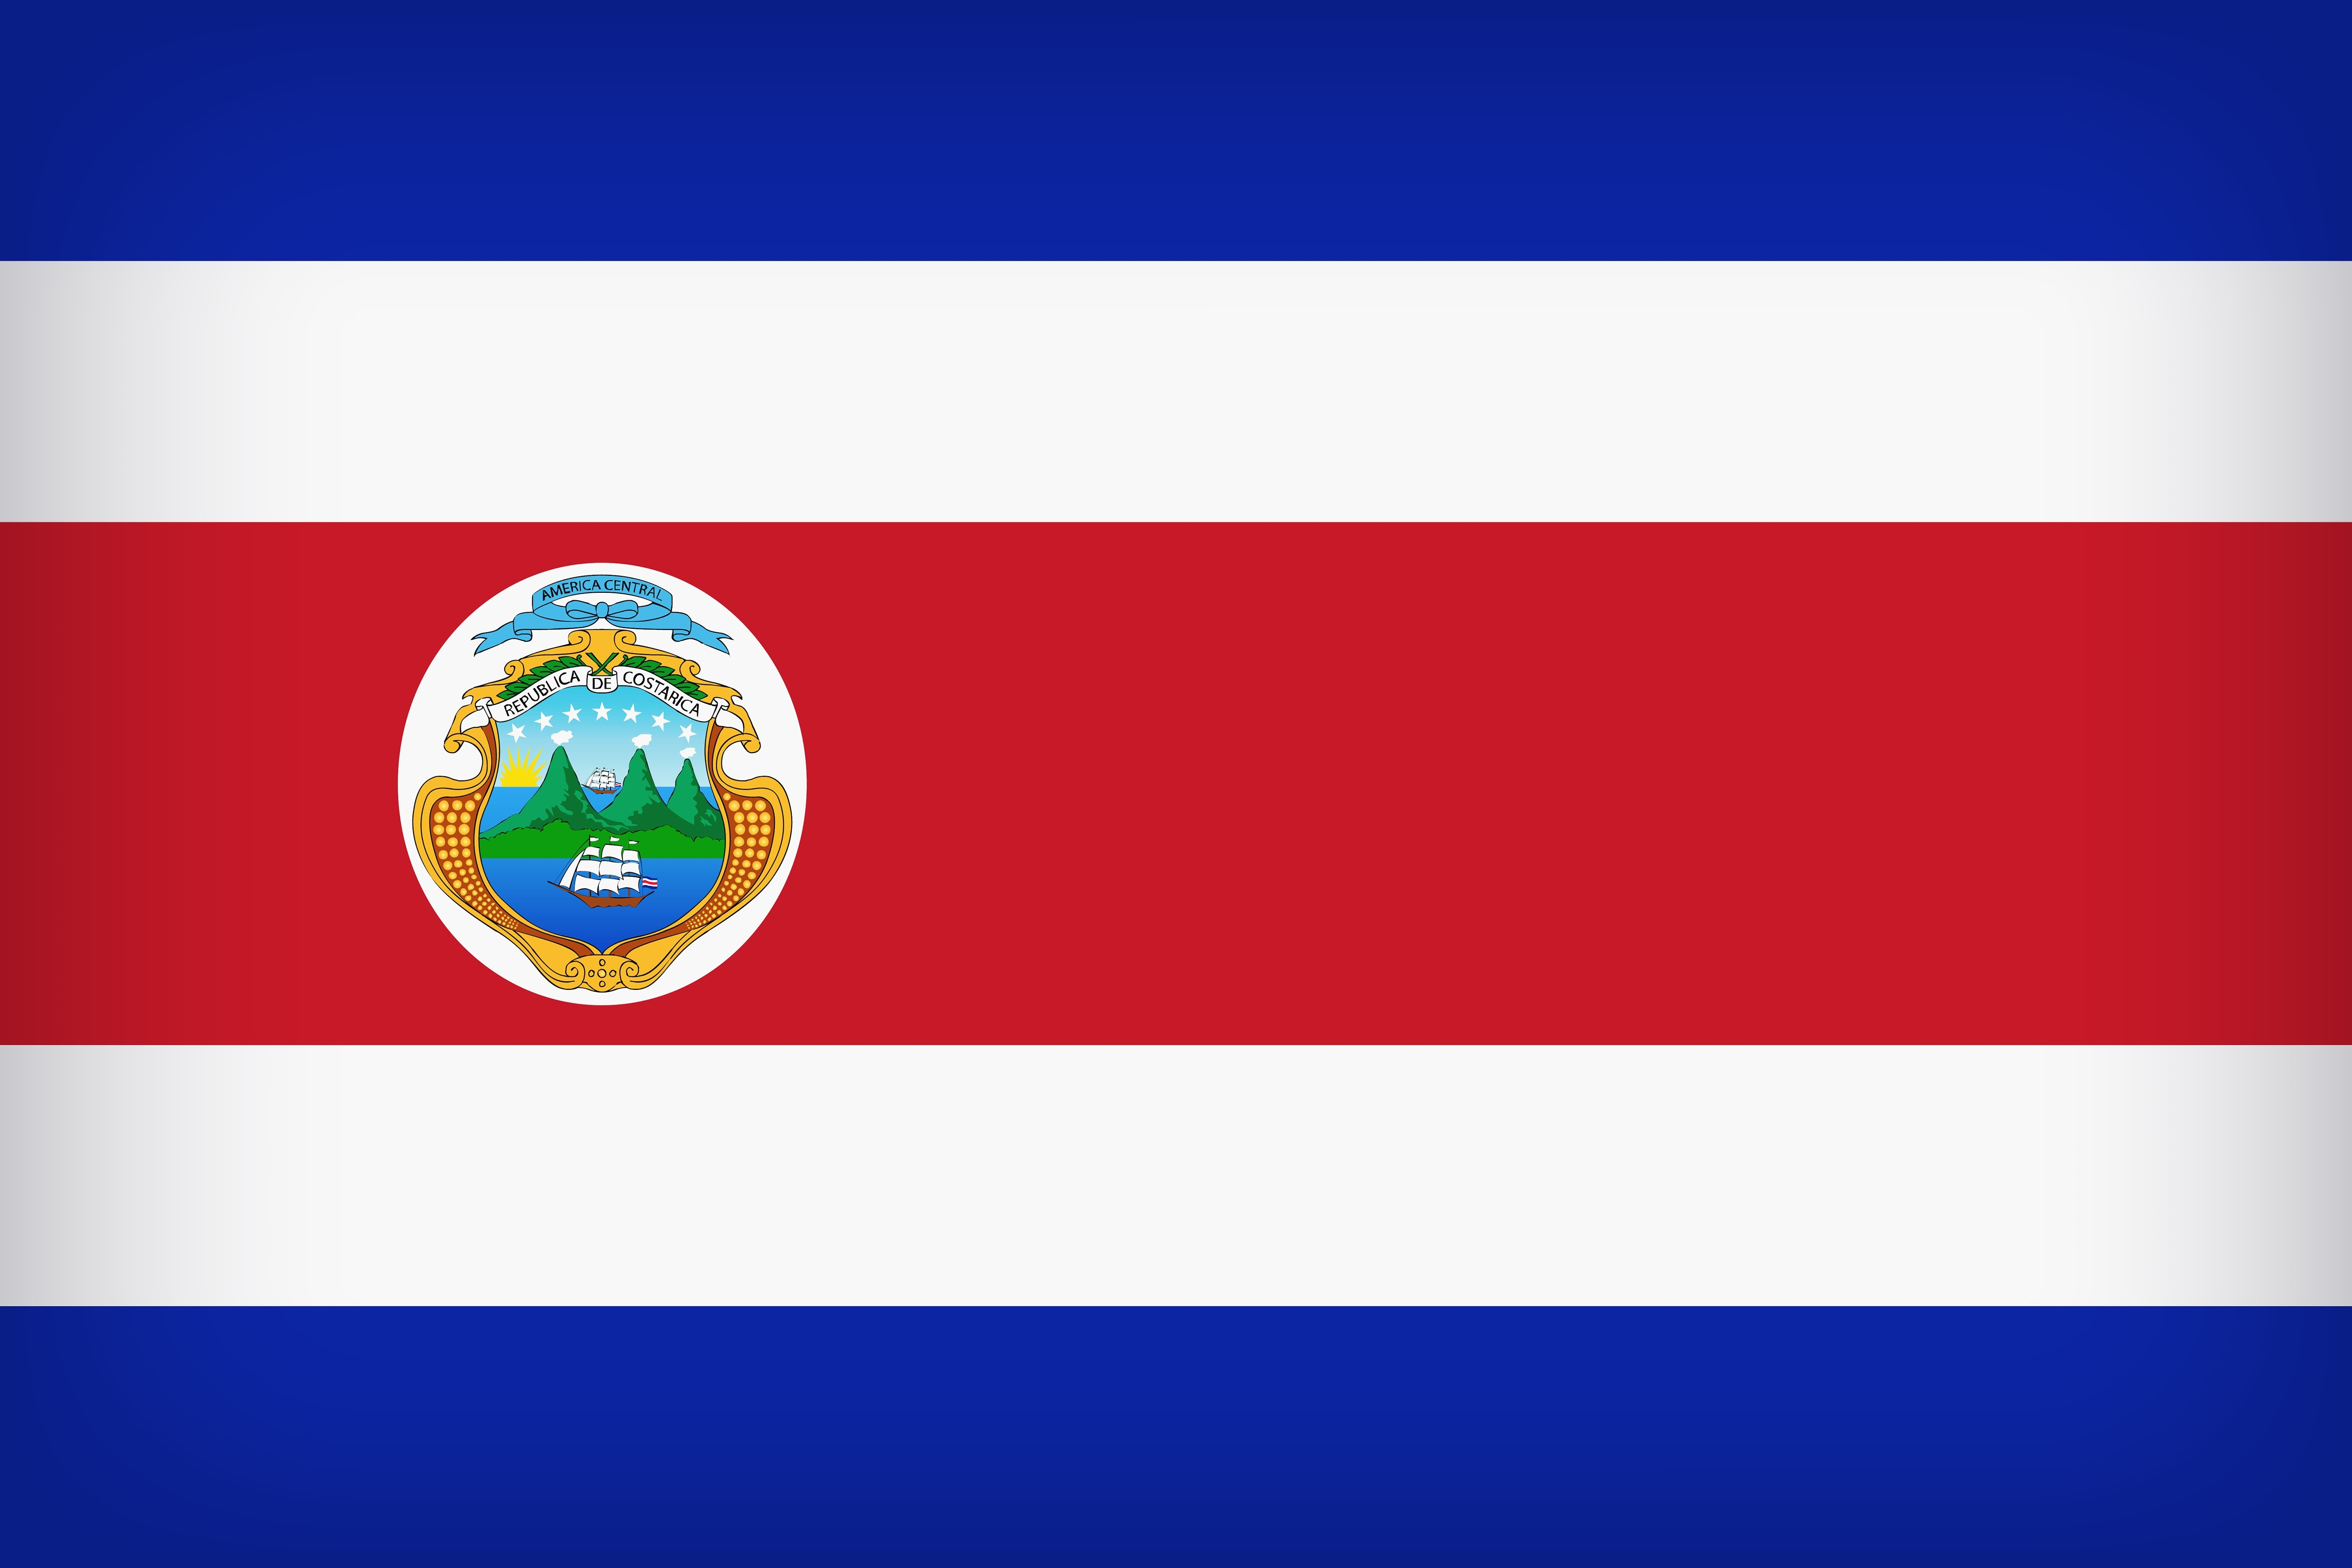 Flag Of Costa Rica 4k Ultra HD Wallpaper And Background Image